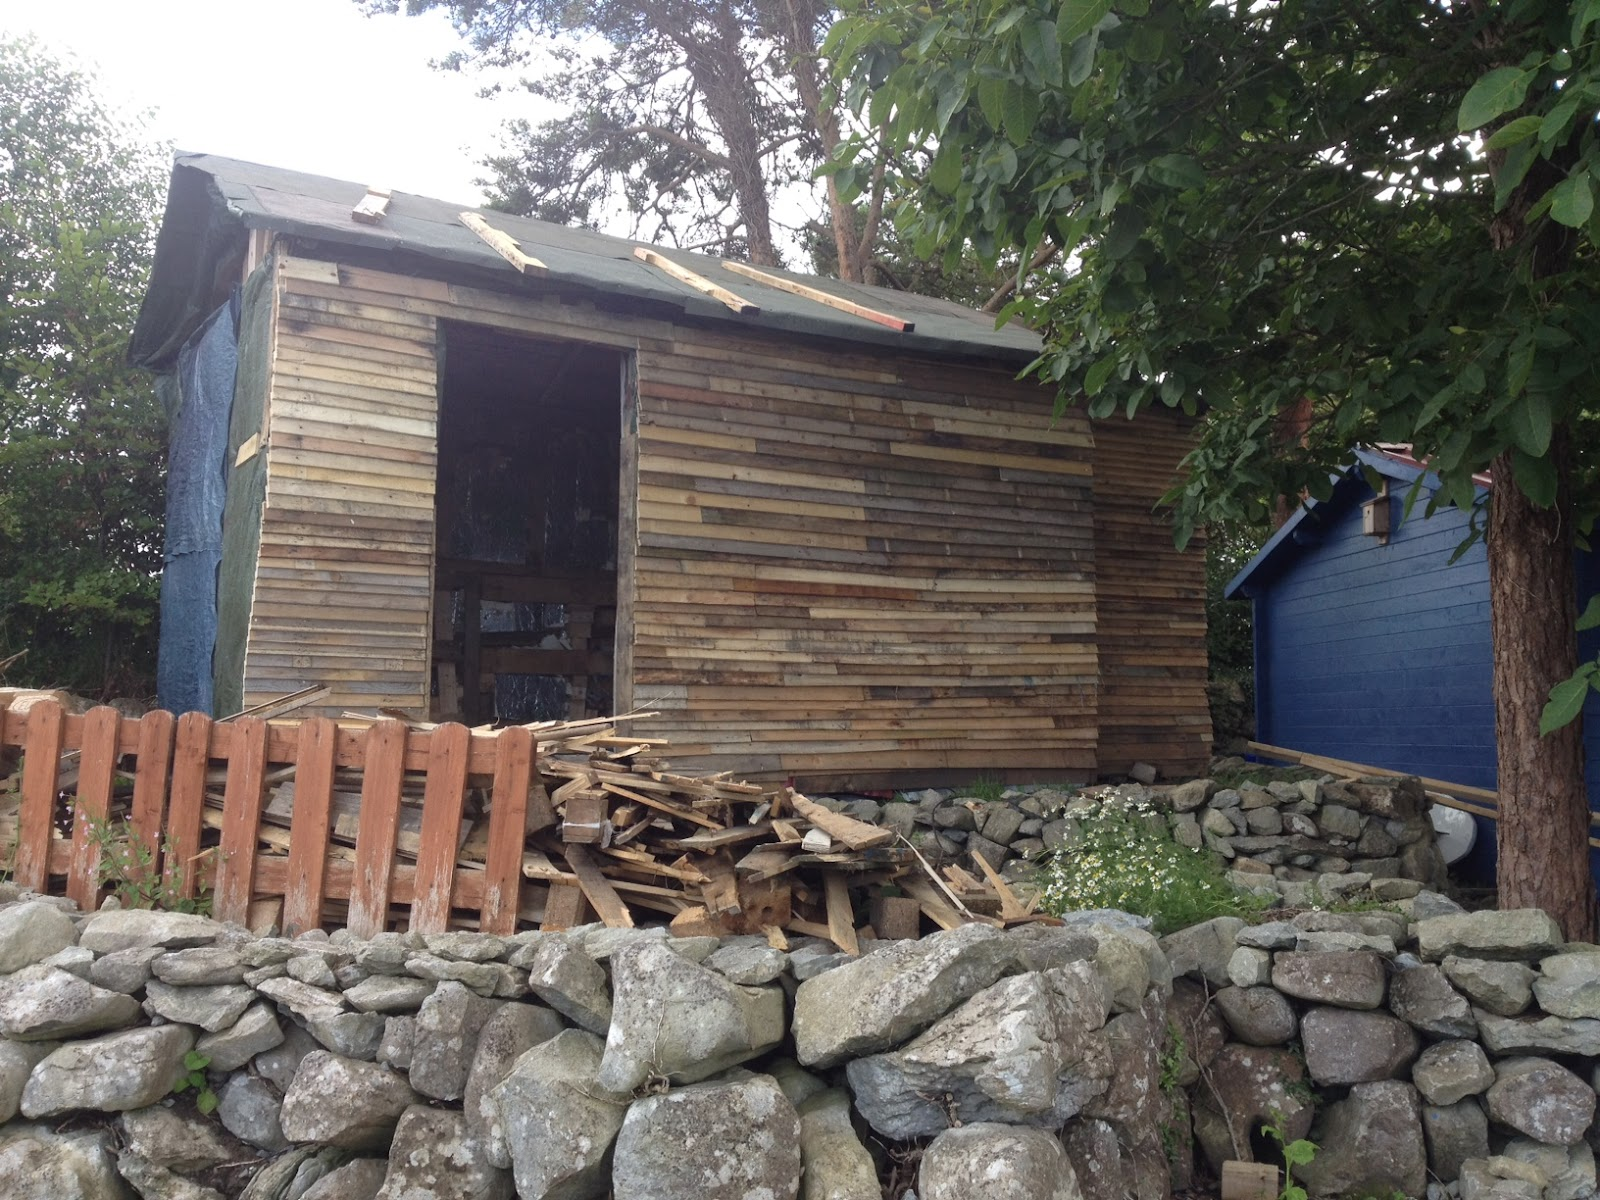 Sheds+Made+Out+of+Pallets Building a shed out of pallets | Asplan